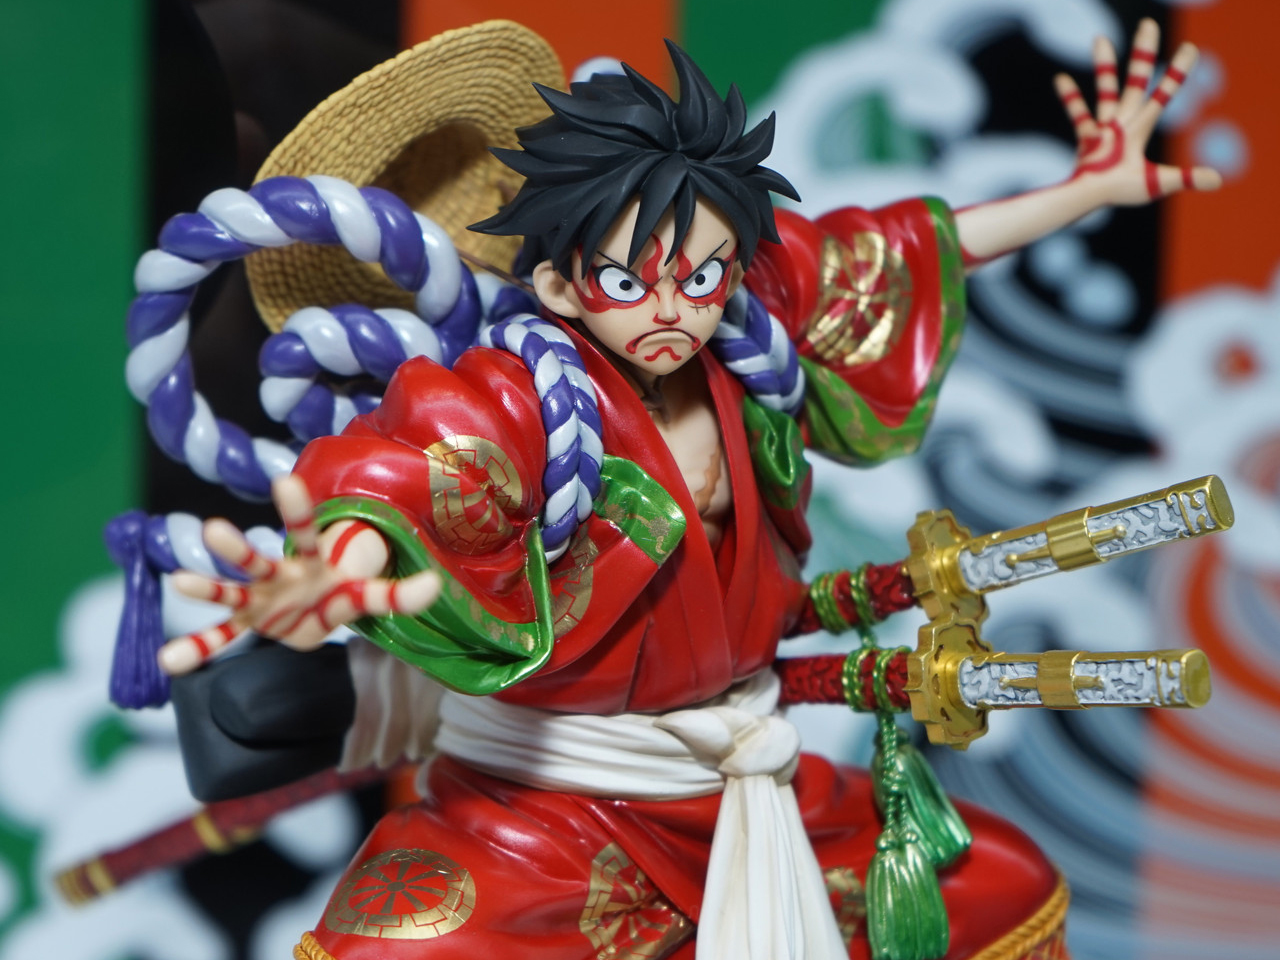 EXPO02 HABUKI Monkey D. Luffy pic02